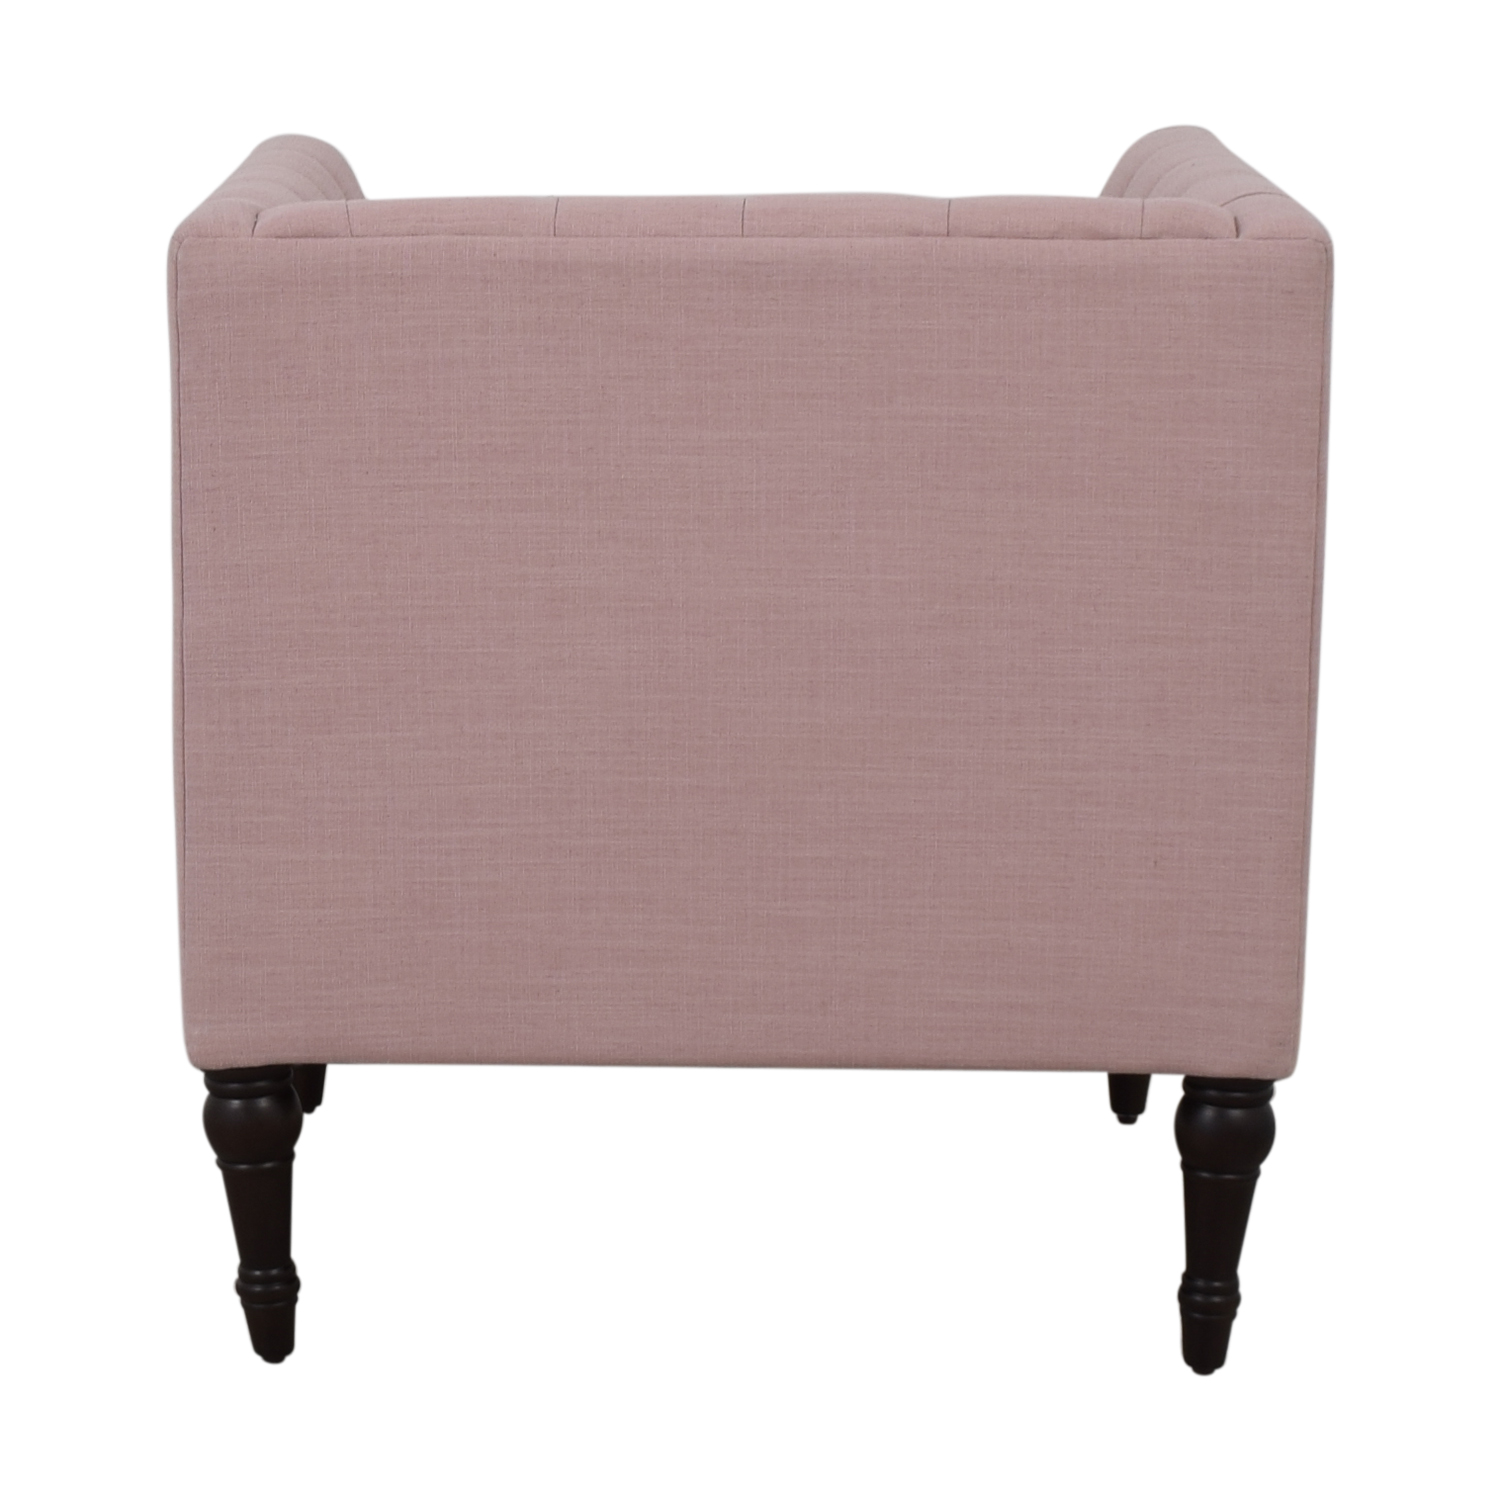 buy Threshold Tilton Square Tufted Arm Chair Threshold Chairs